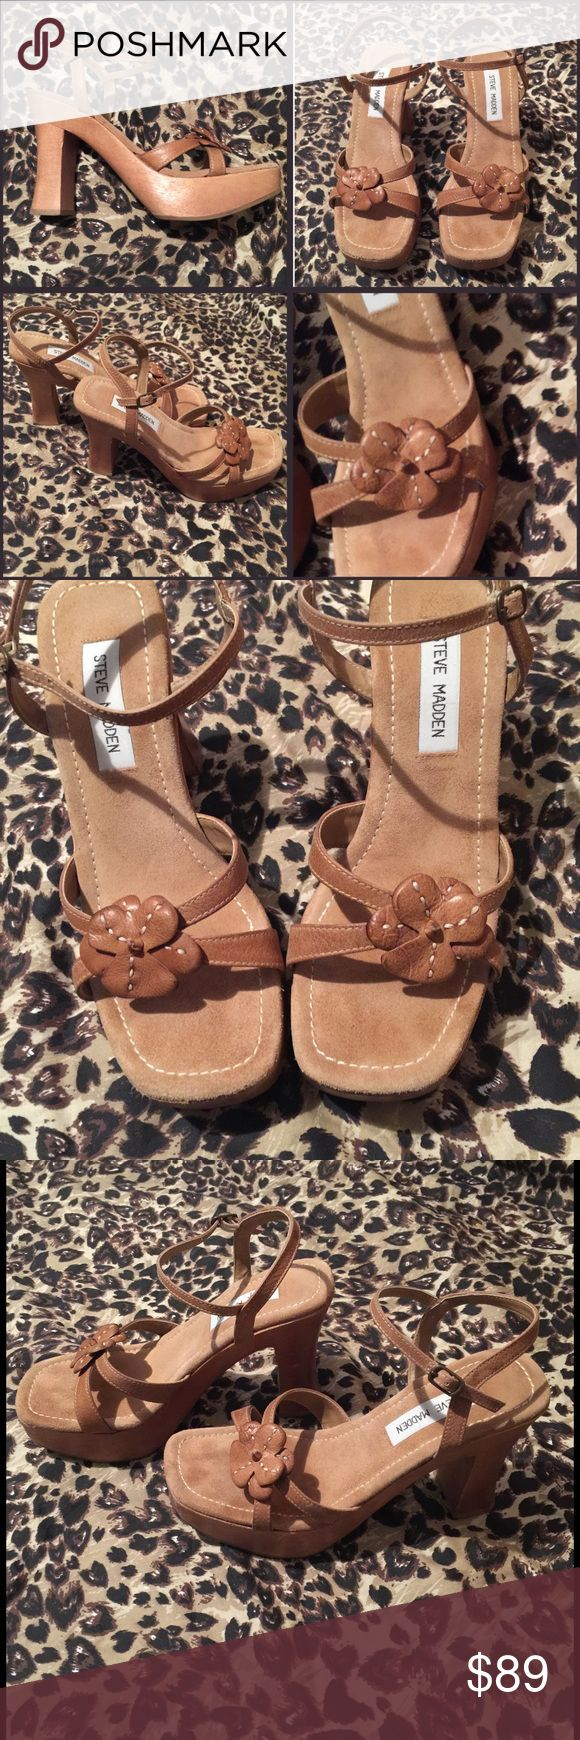 STEEVE MADDEN WOODEN HEELS STEEVE madden wooden heels, super cute and hard to find! Lightly worn, maybe 2-3 times. No trades or holds. Price is firm unless bundled Steve Madden Shoes